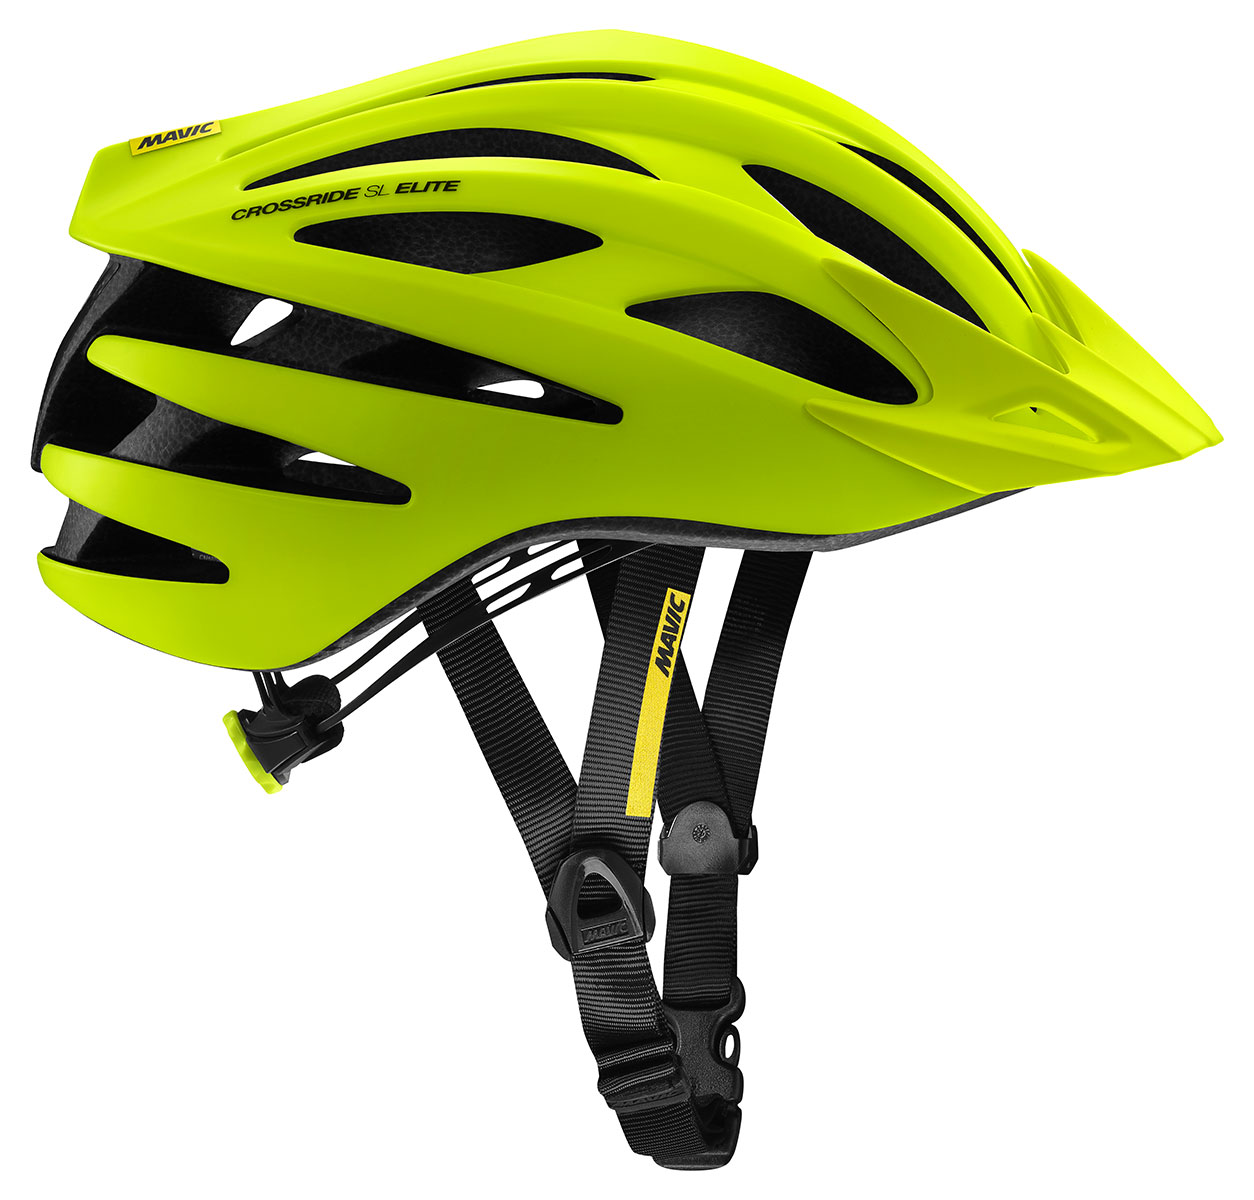 Mavic Crossride SL Elite Helmet - Safety Yellow/Black L-(57-61)